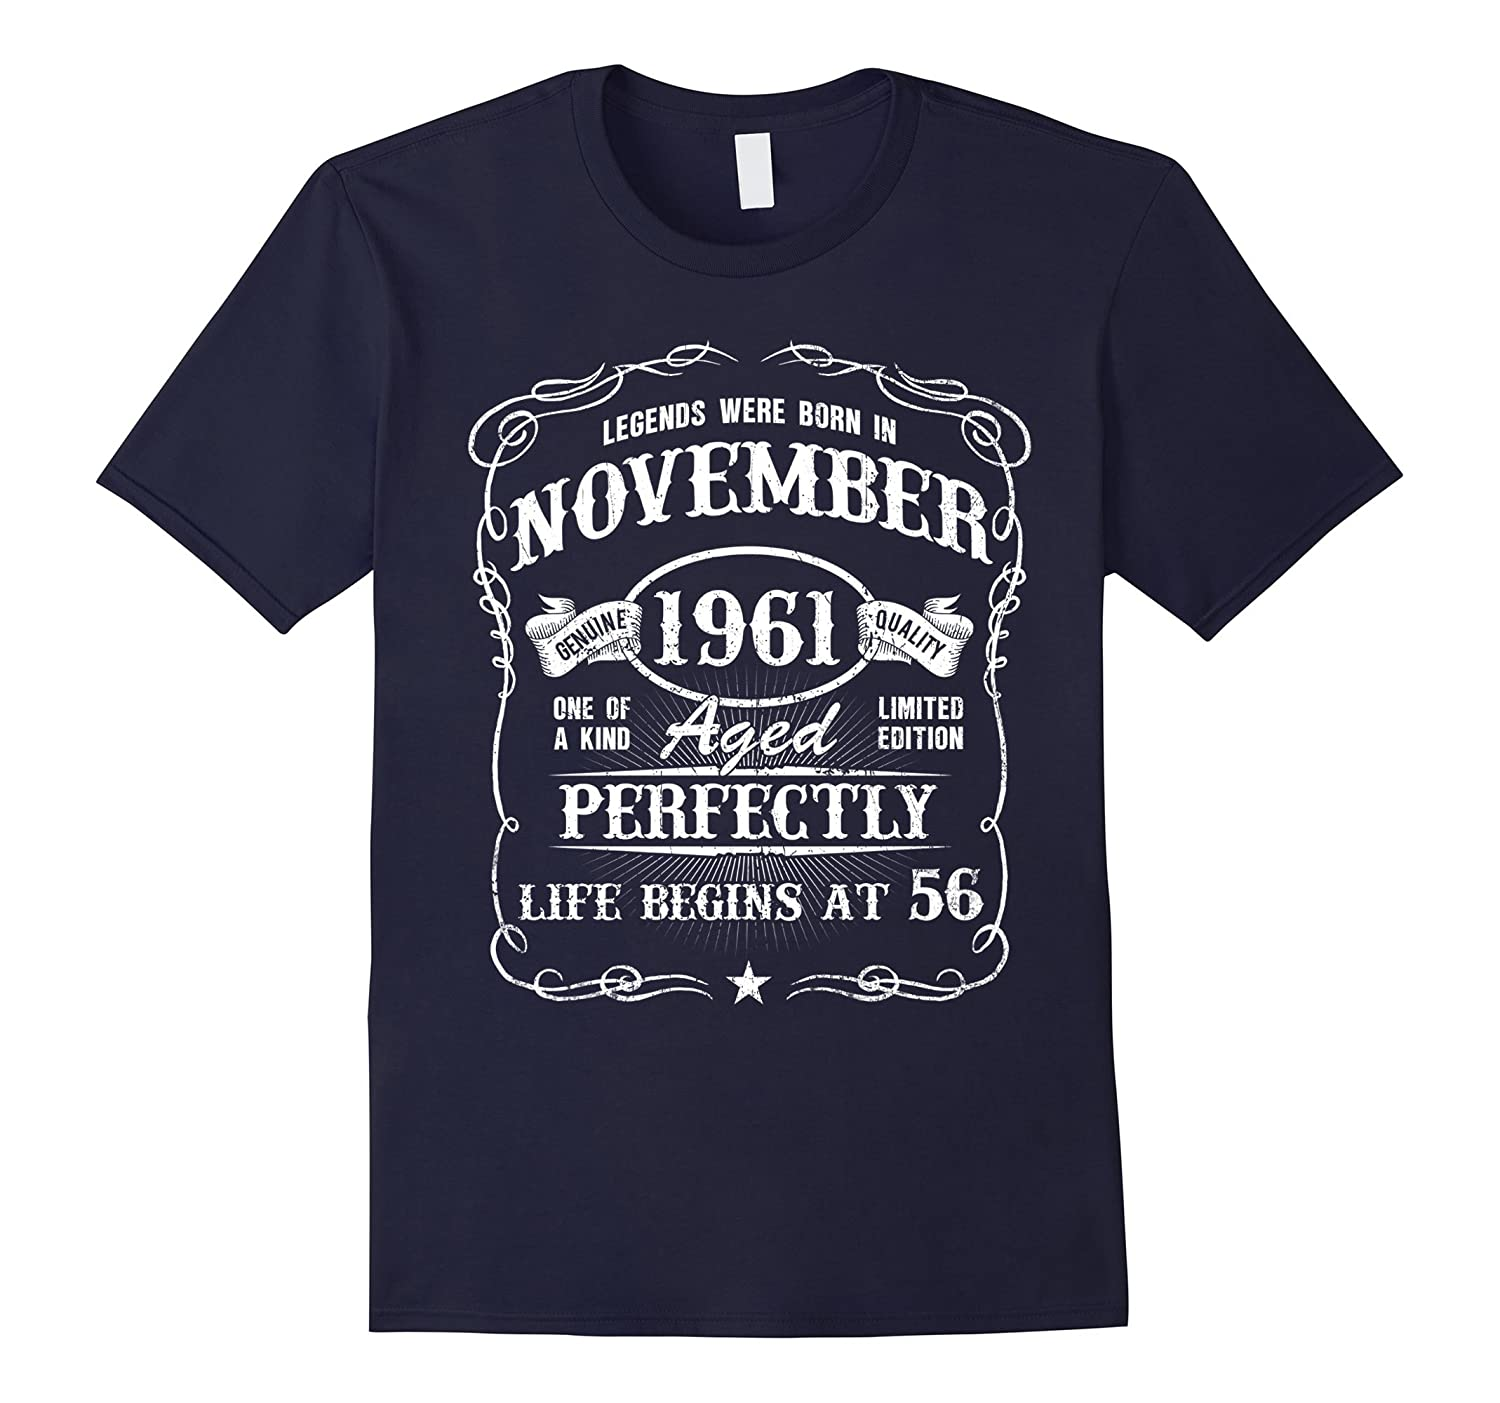 Born in November 1961 - Legends were Born in November TShirt-T-Shirt